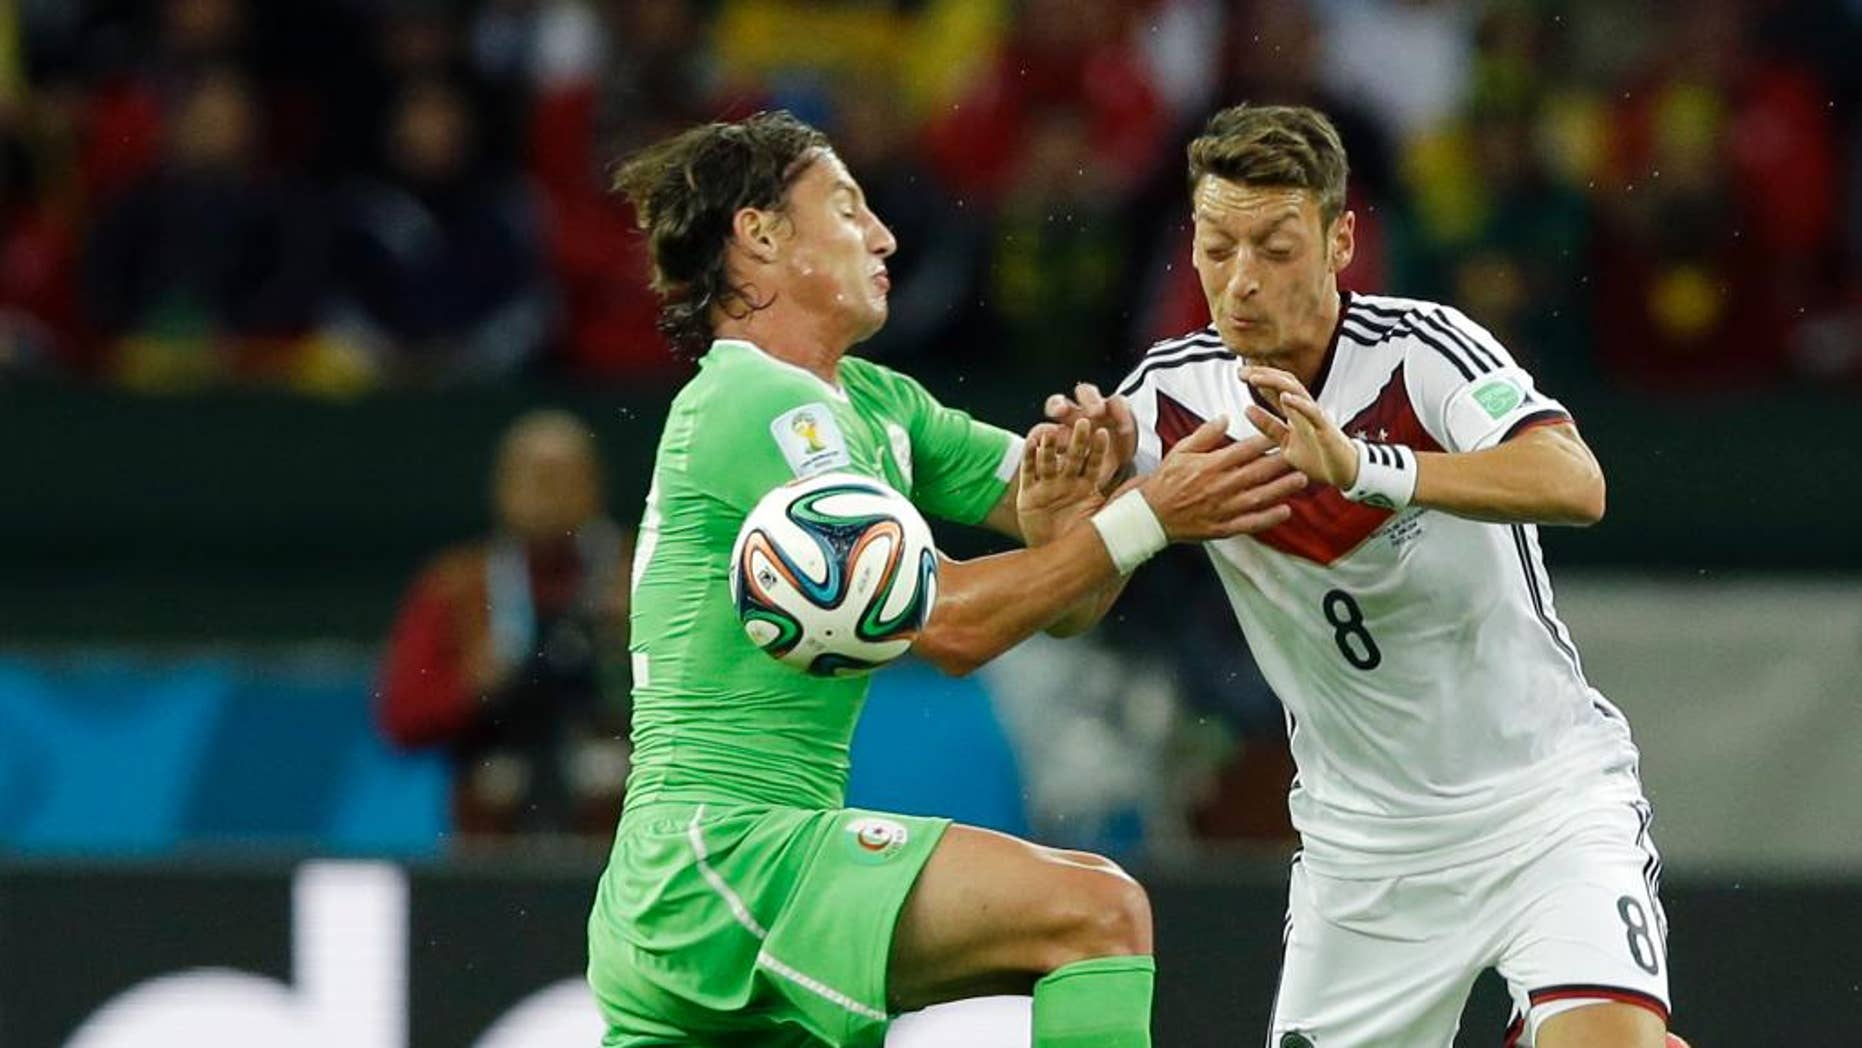 Algeria's Mehdi Mostefa, left, pushes off Germany's Mesut Ozil to stop his attack during the World Cup round of 16 soccer match between Germany and Algeria at the Estadio Beira-Rio in Porto Alegre, Brazil, Monday, June 30, 2014. (AP Photo/Kirsty Wigglesworth)